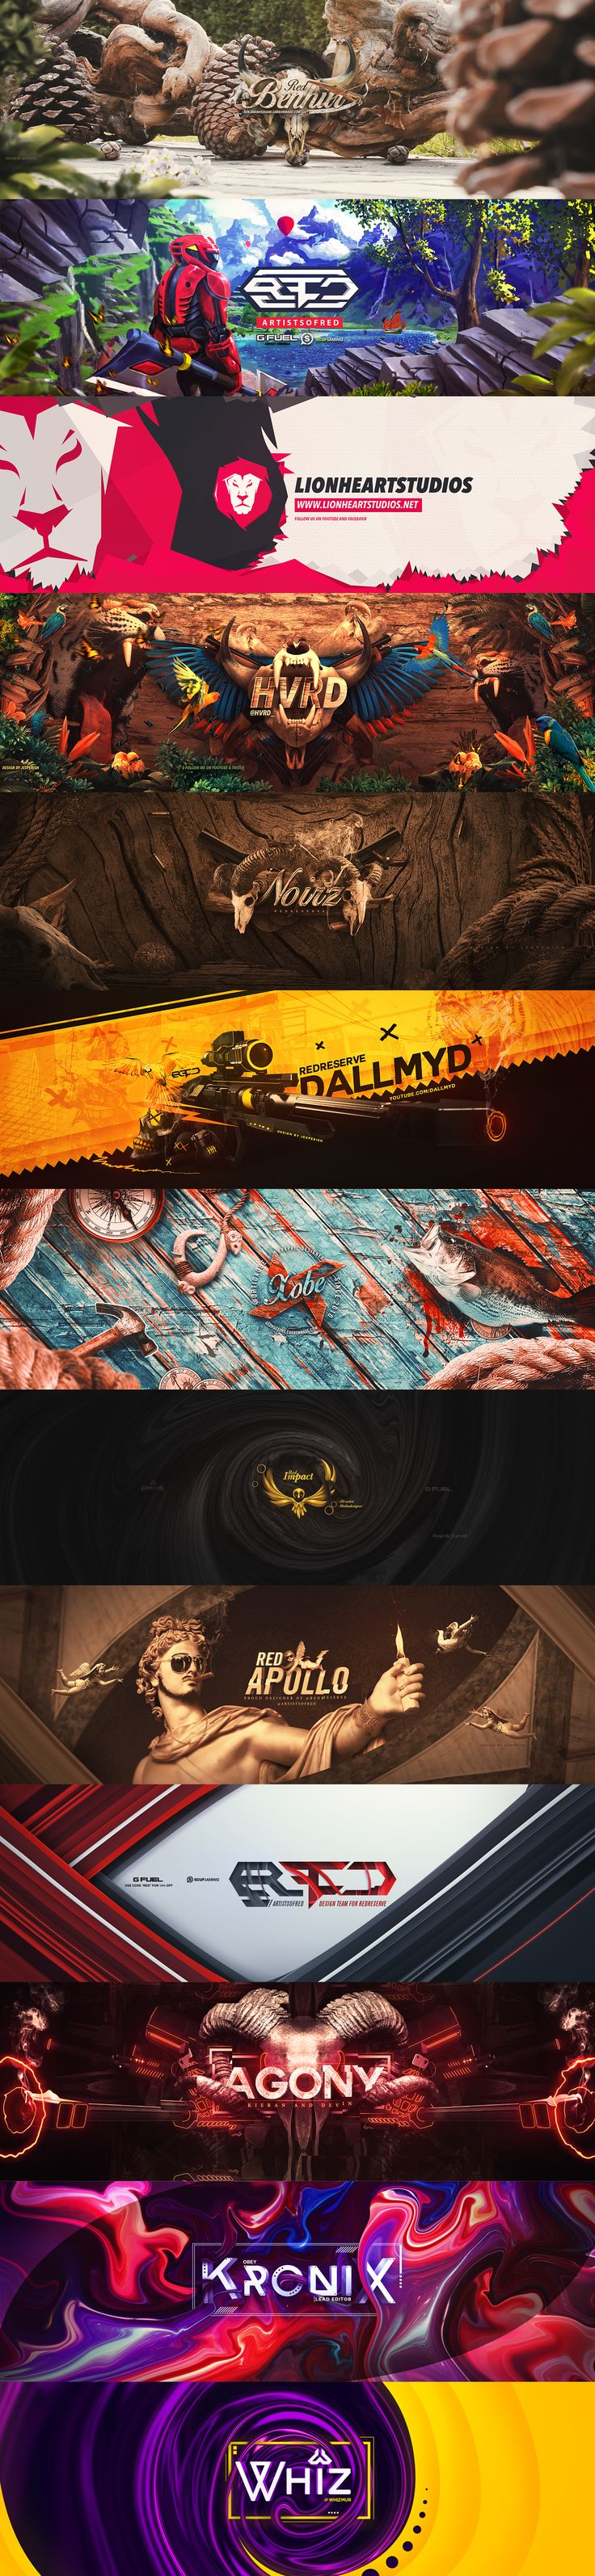 Banner design on Behance